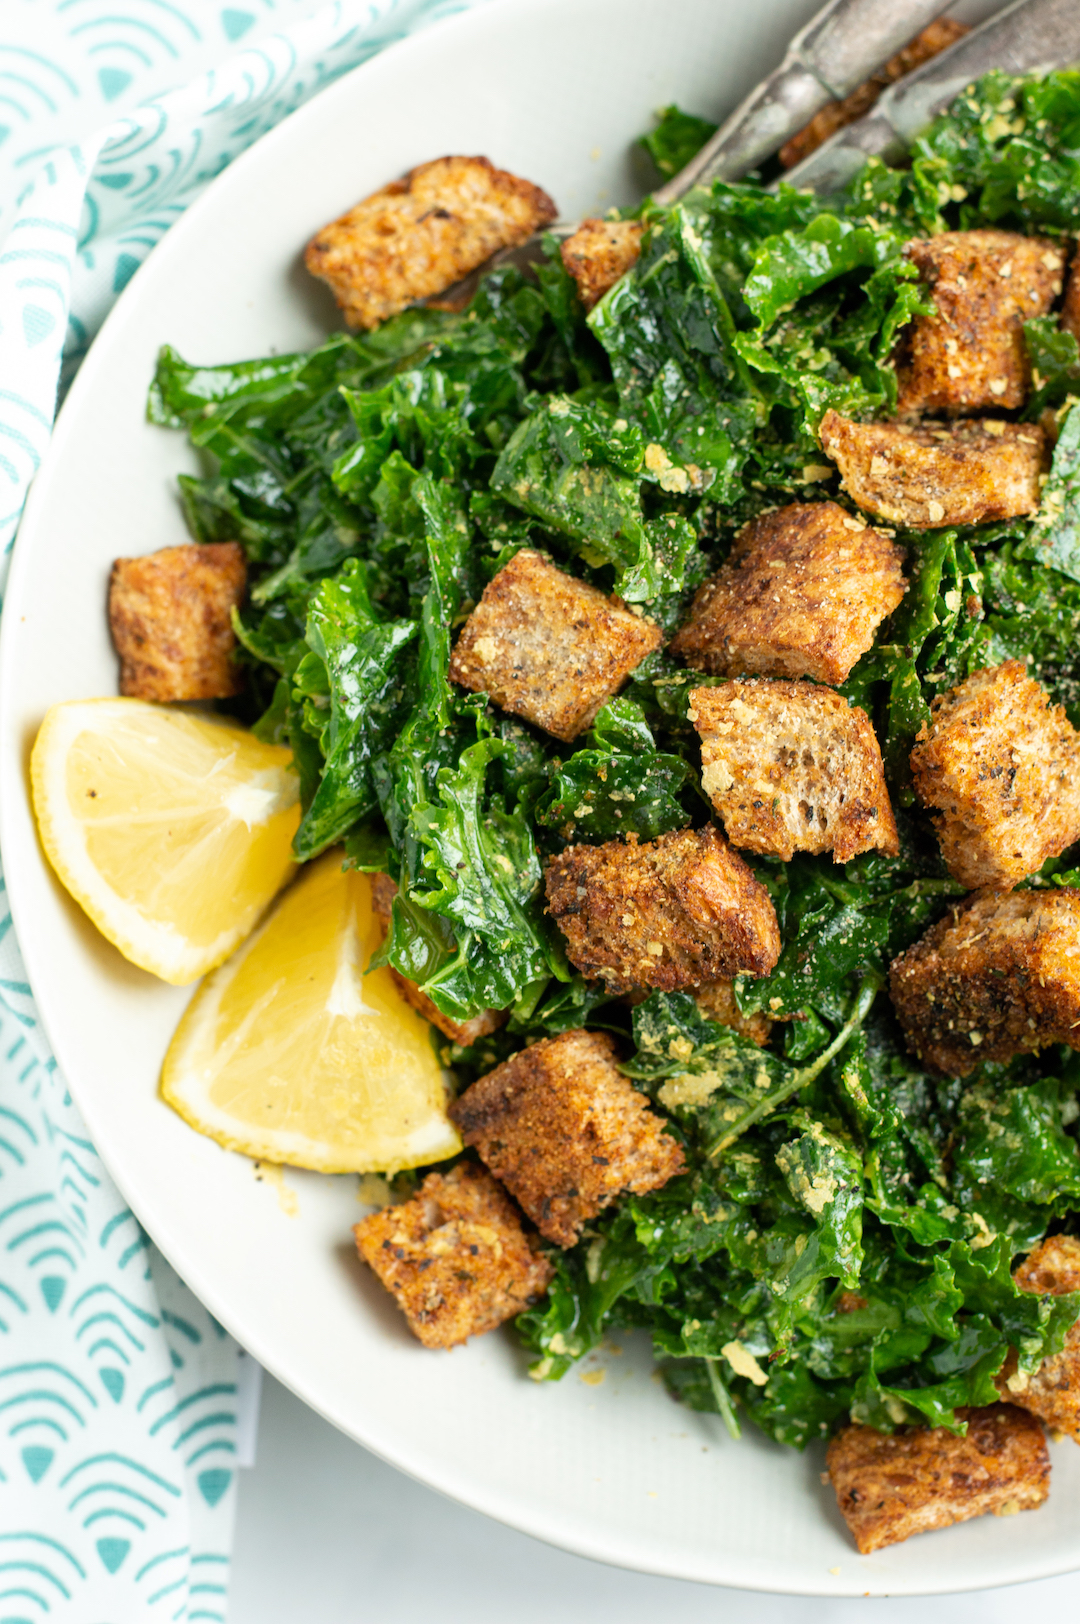 This Easy Kale Caesar Salad is a lighter and vegan take on a classic! The perfect side dish beside any lunch or dinner, this healthy, clean eating (and gluten free!) kale salad so good. And the best part? A super simple dressing made with lemon, olive oil and garlic and those homemade croutons!